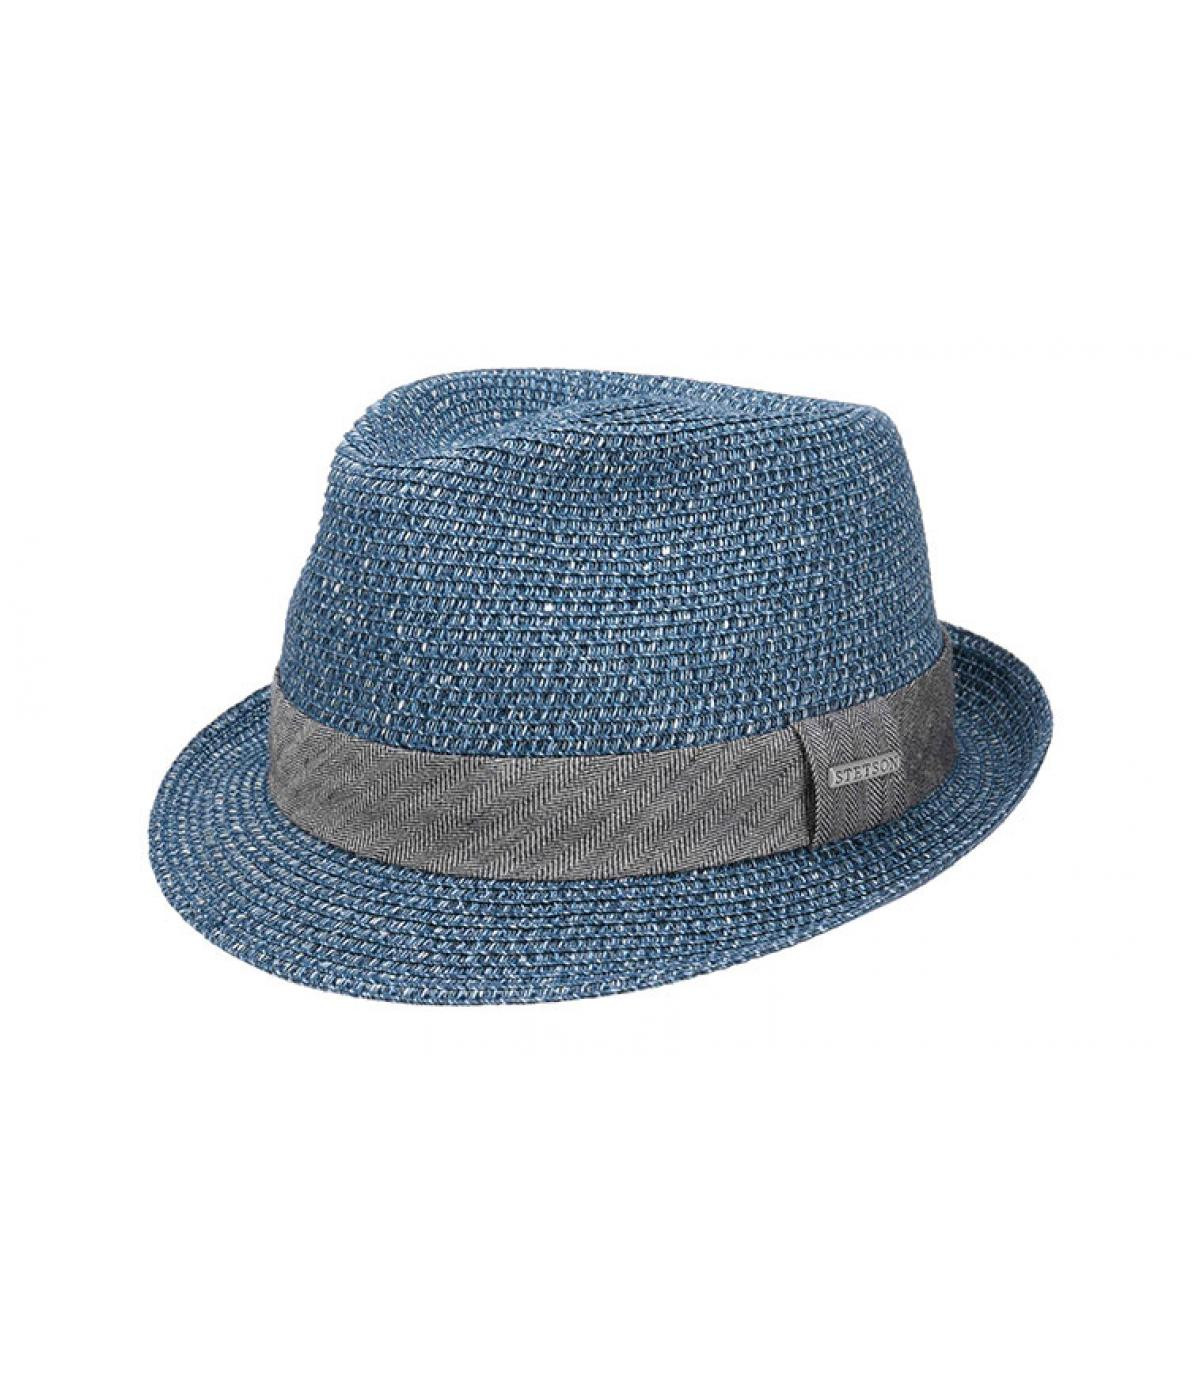 Details Trilby Toyo blue - afbeeling 2